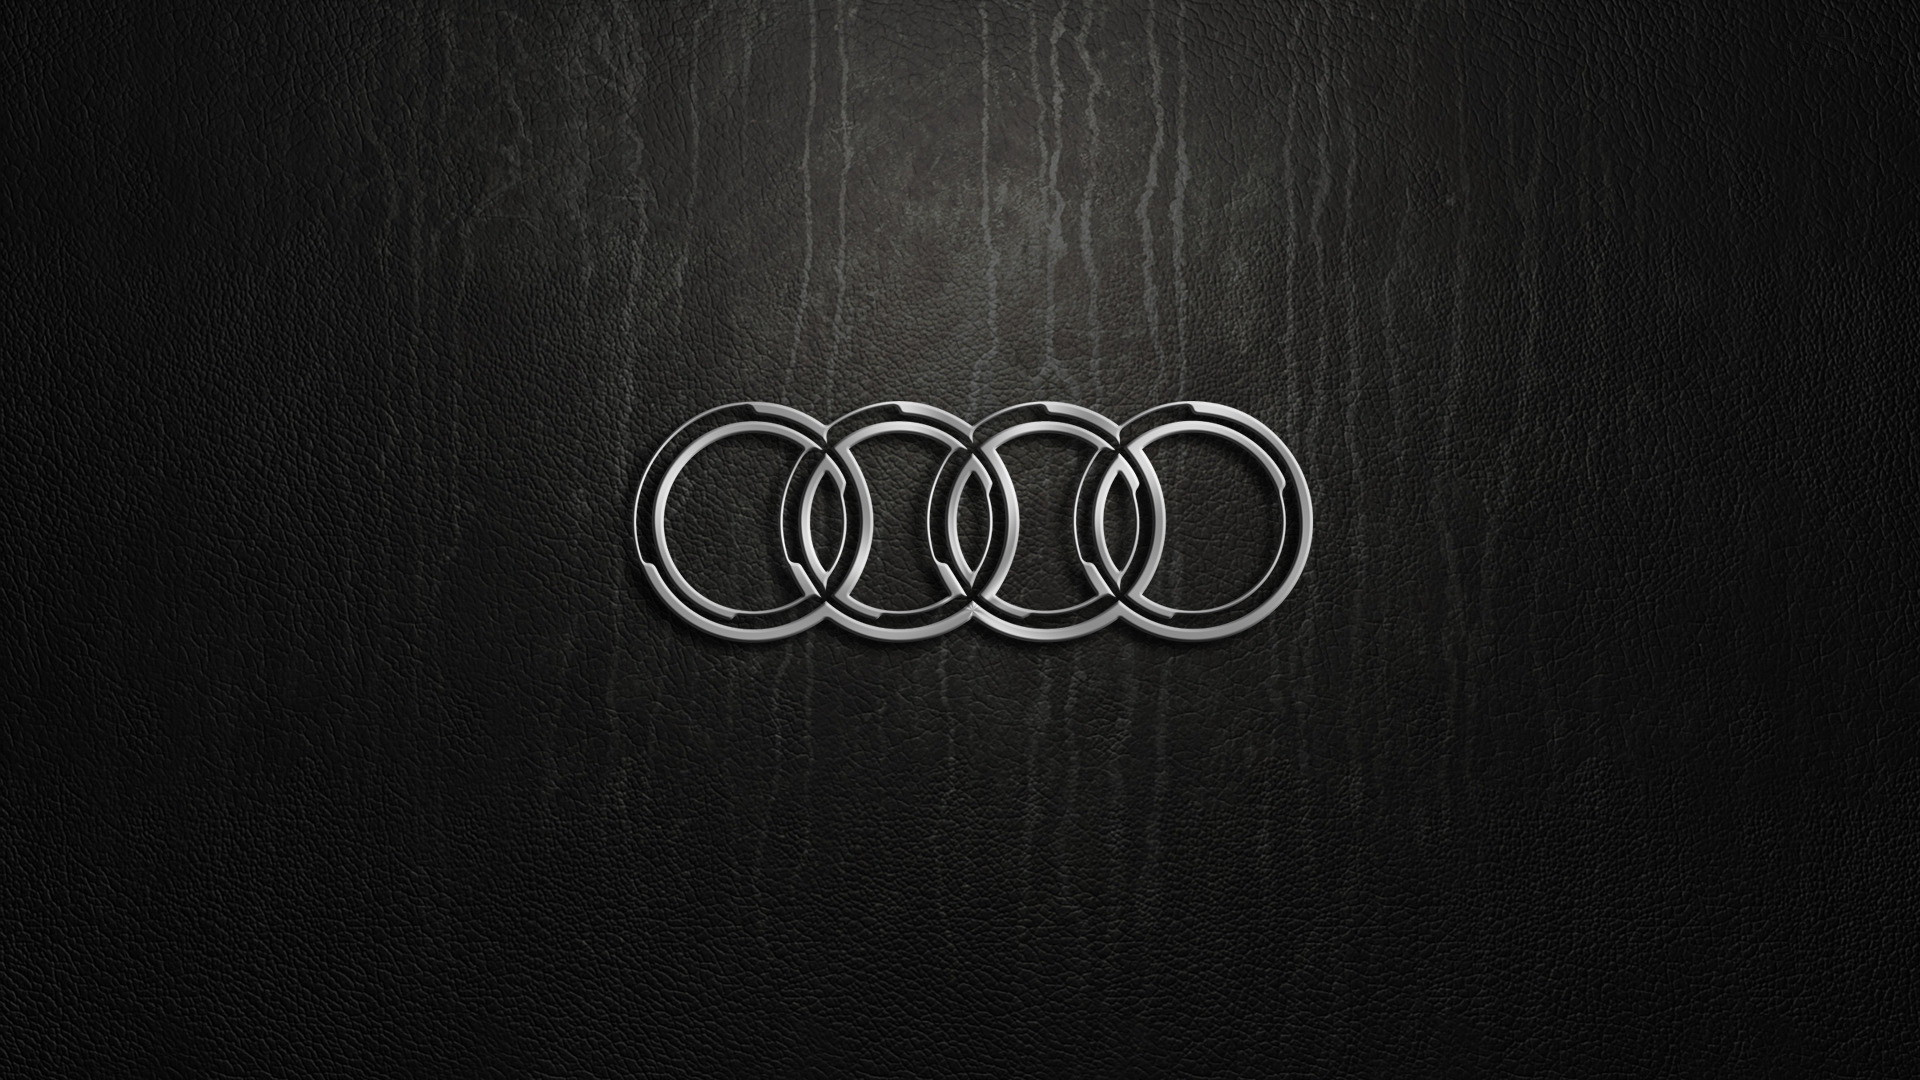 Res: 1920x1080, Audi Logo Wallpaper For Iphone